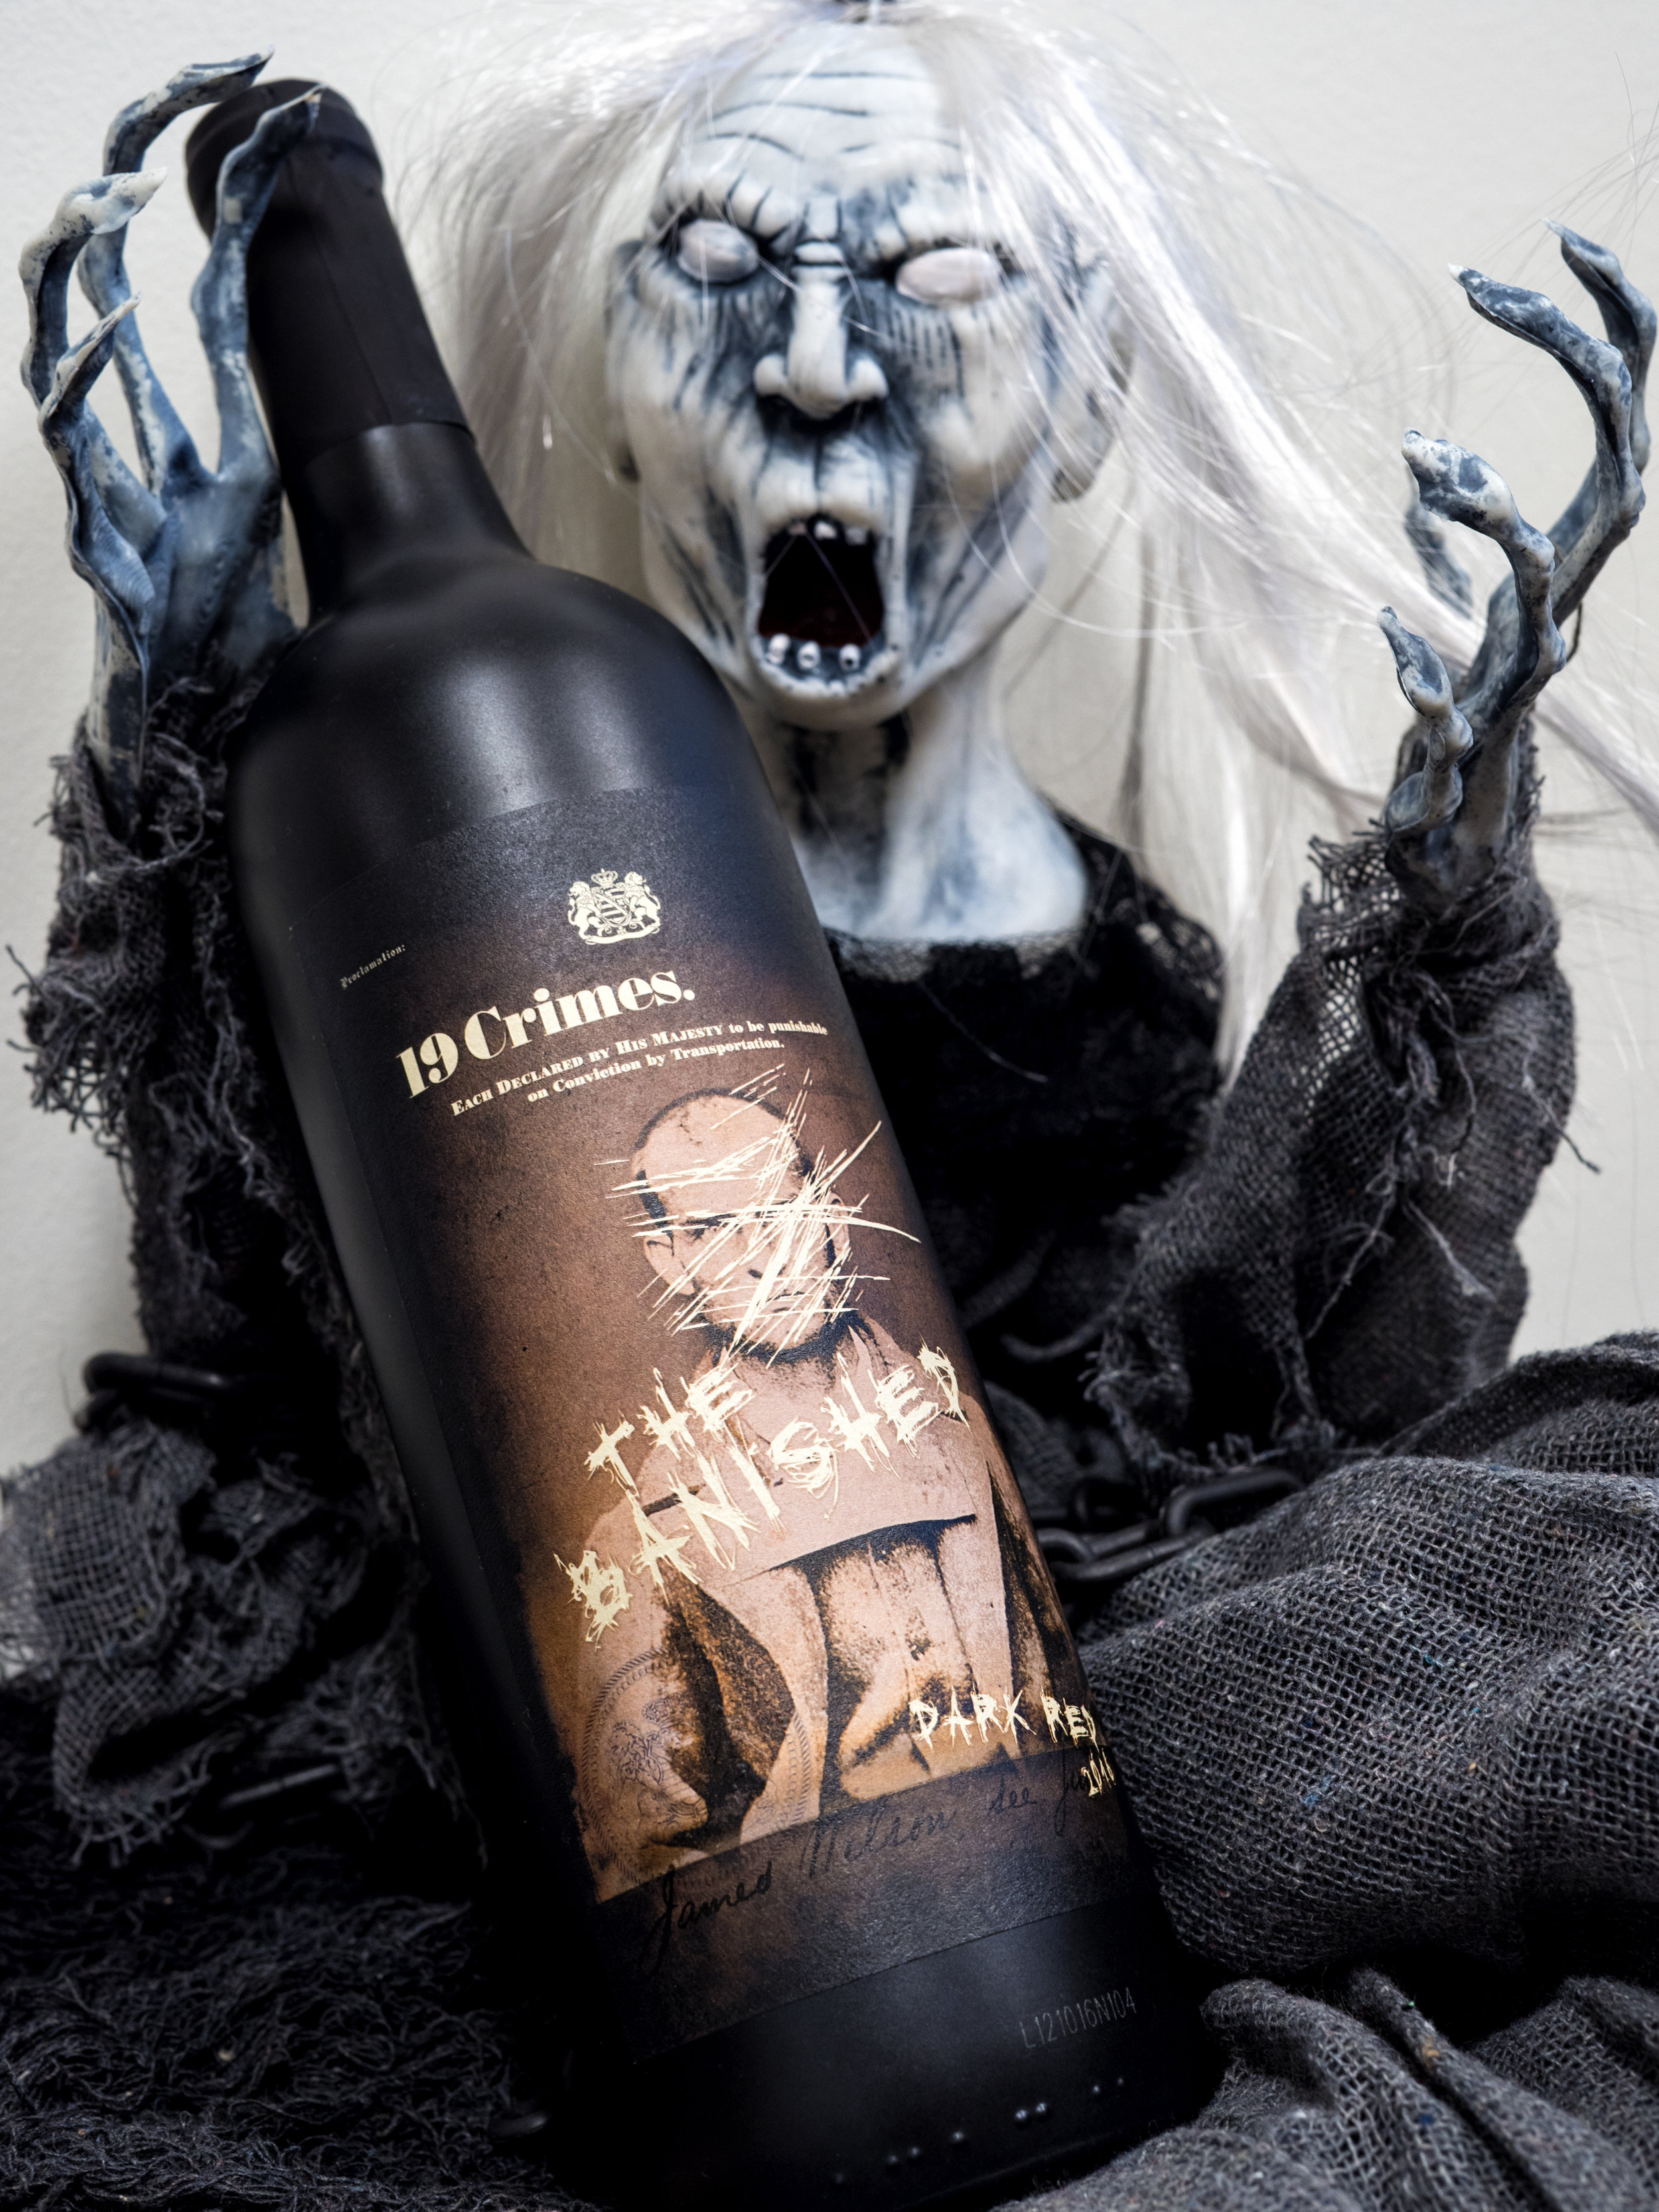 Musings by the Glass - Tips and Recommendations for Spooky Wines for your Halloween Party - 2016 Banished 19 Crimes Red Blend Southeastern Australia